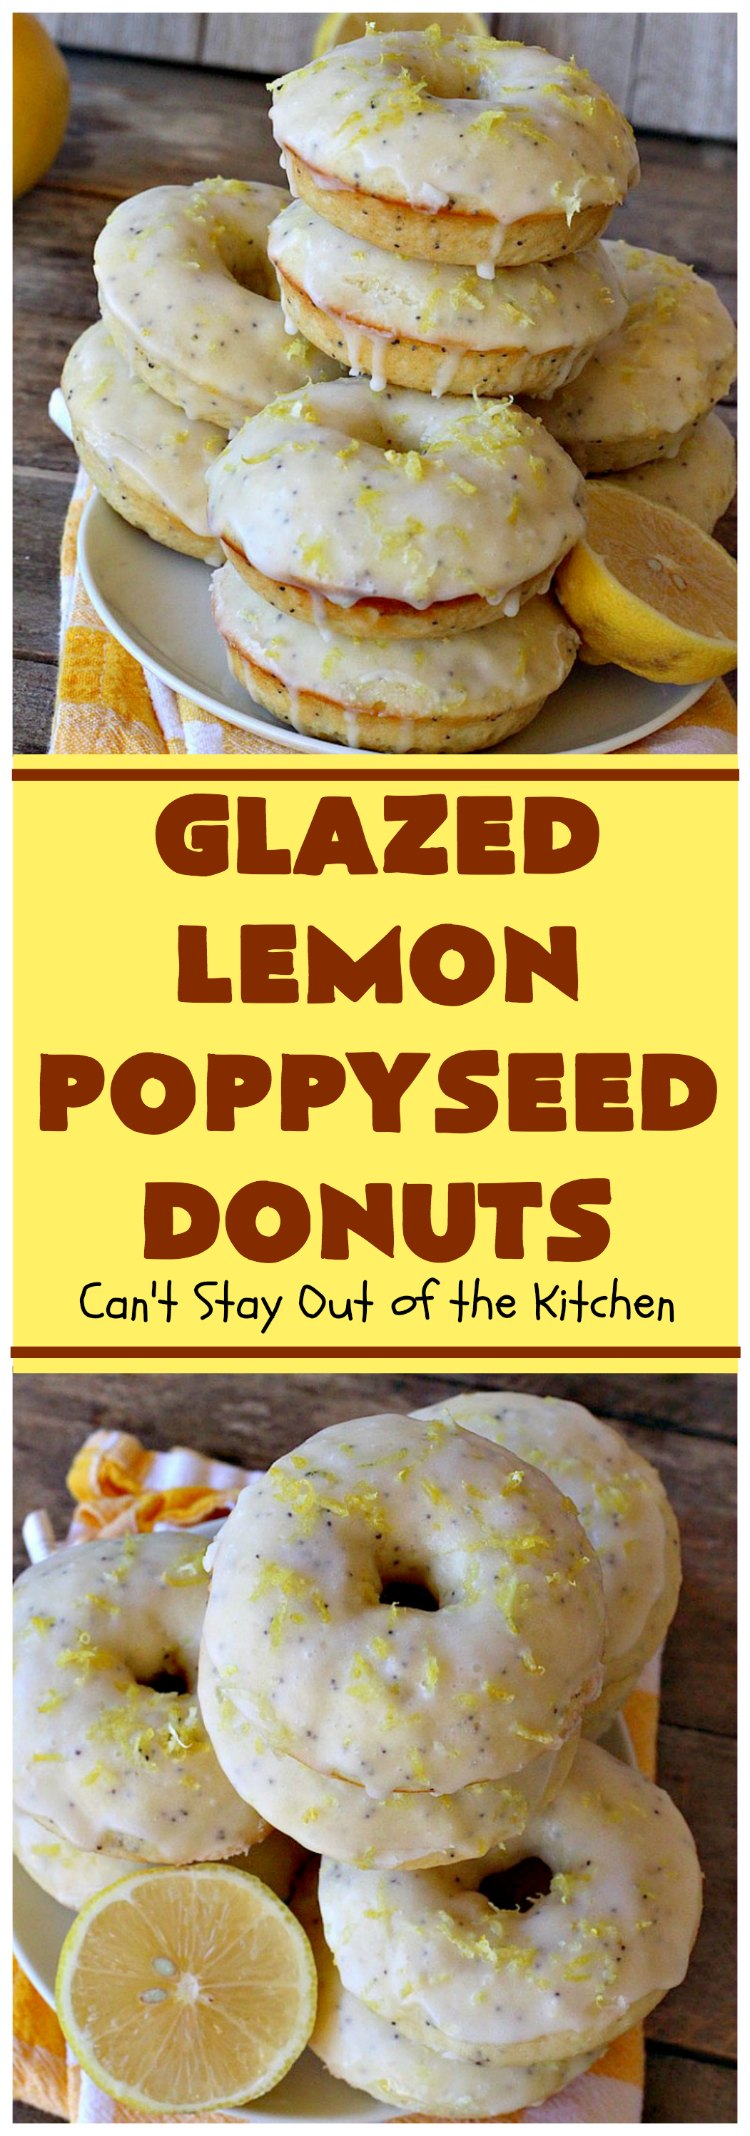 Glazed Lemon Poppyseed Donuts | Can't Stay Out of the Kitchen